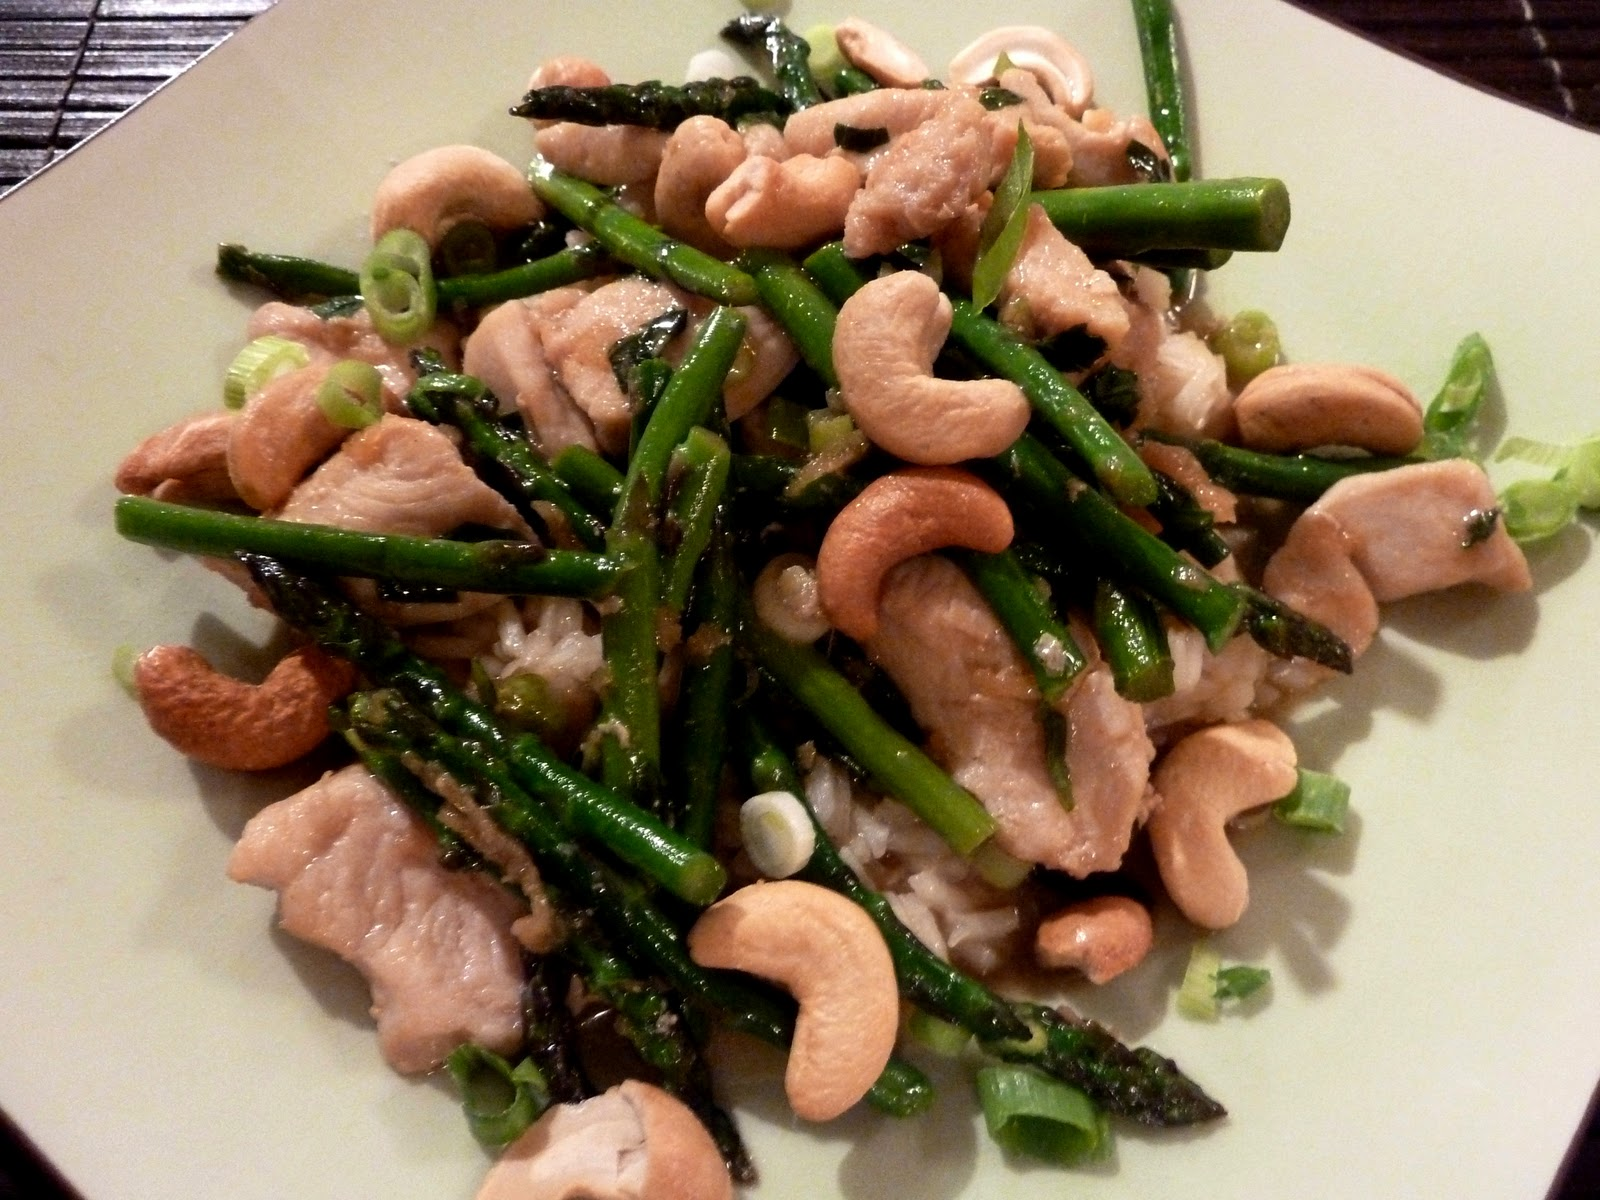 Cracked Pepper: Chicken and Asparagus Stir Fry with Cashews